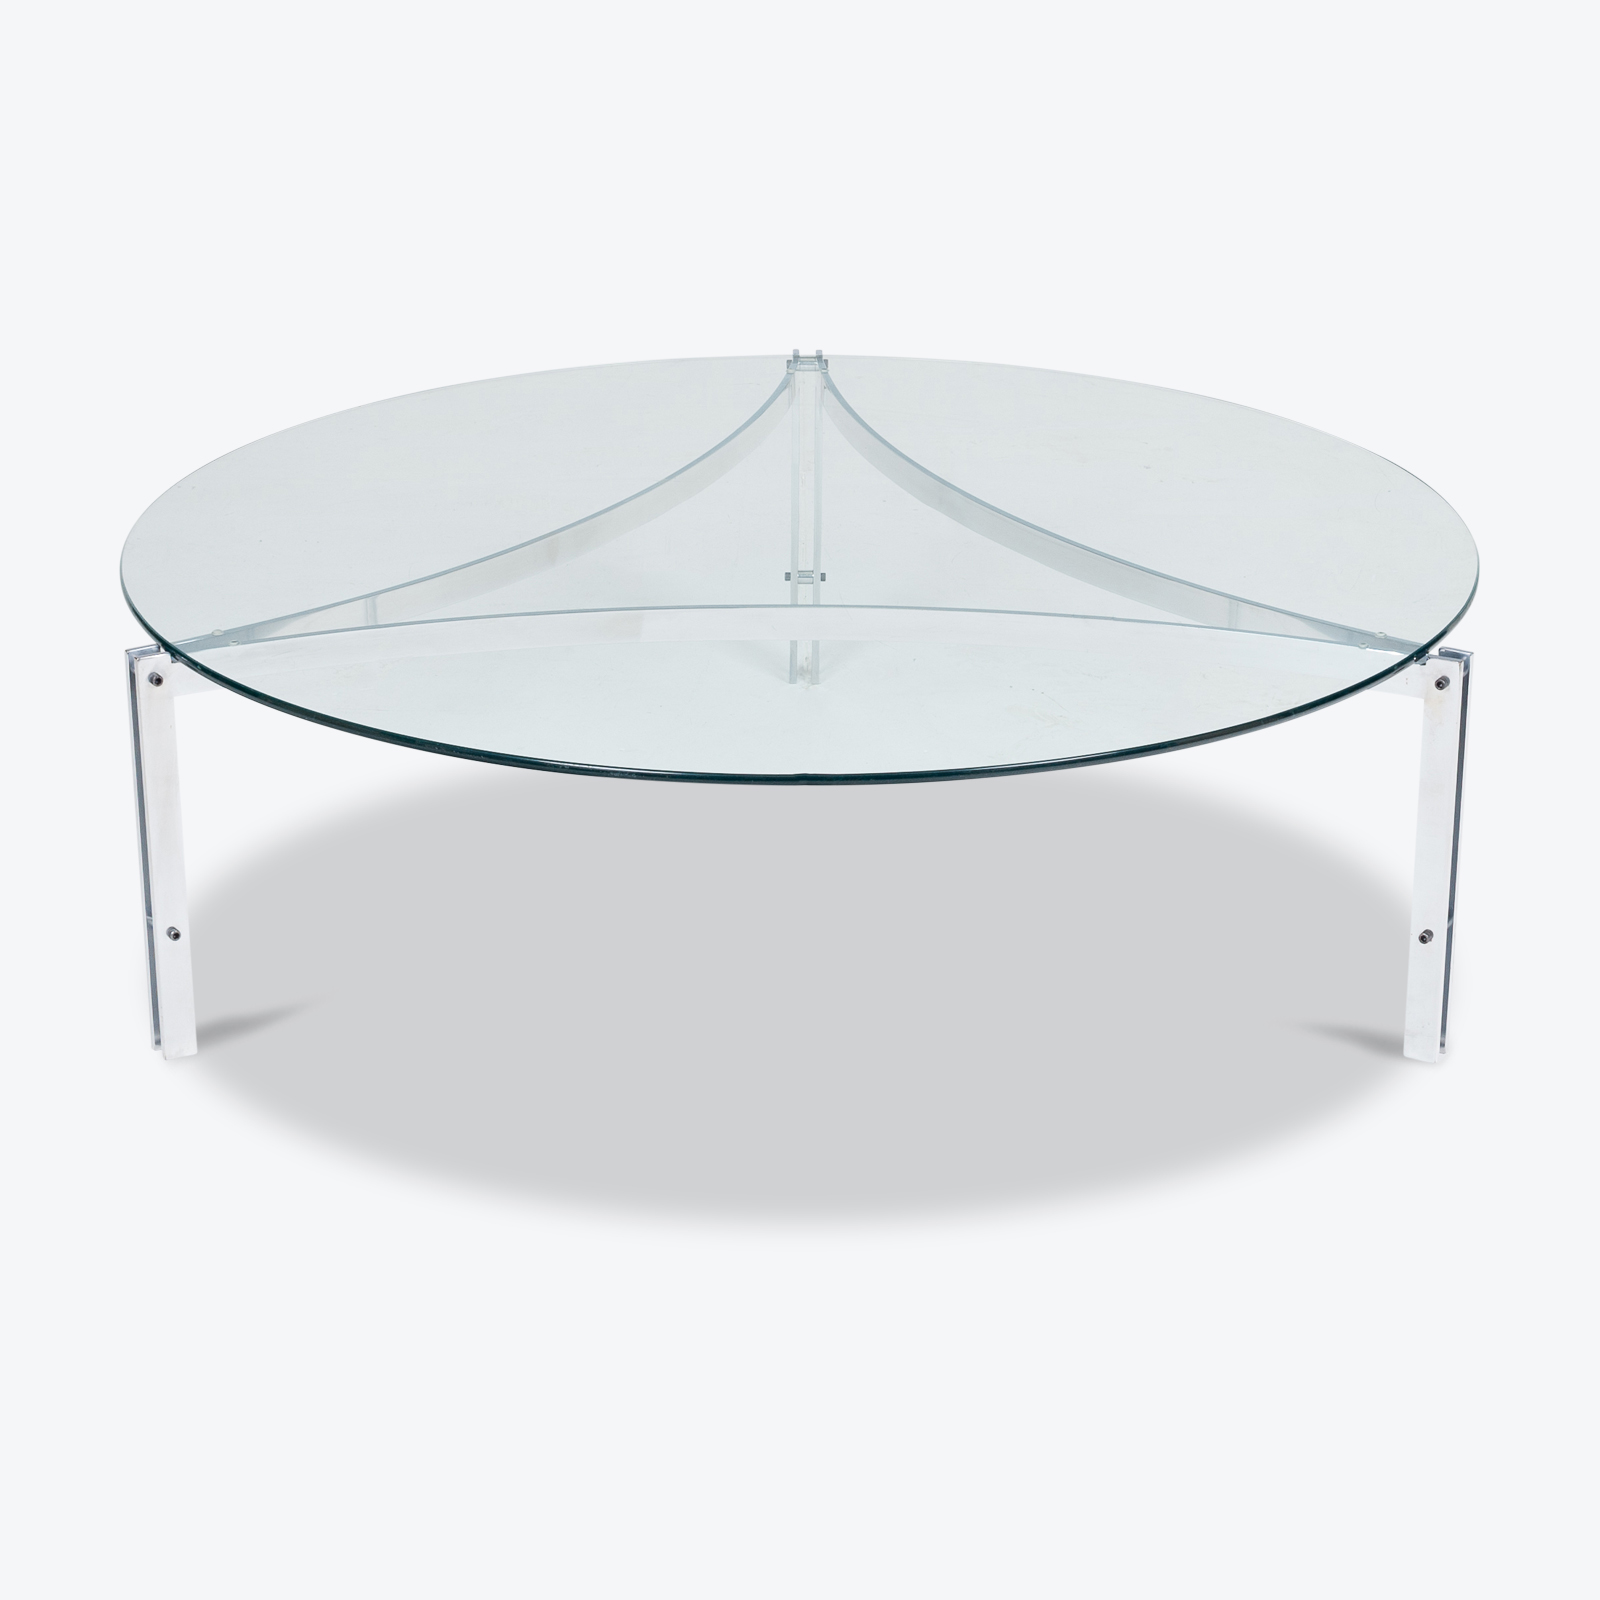 Tri Base Coffee Table By Metaform, 1970s, The Netherlands Hero